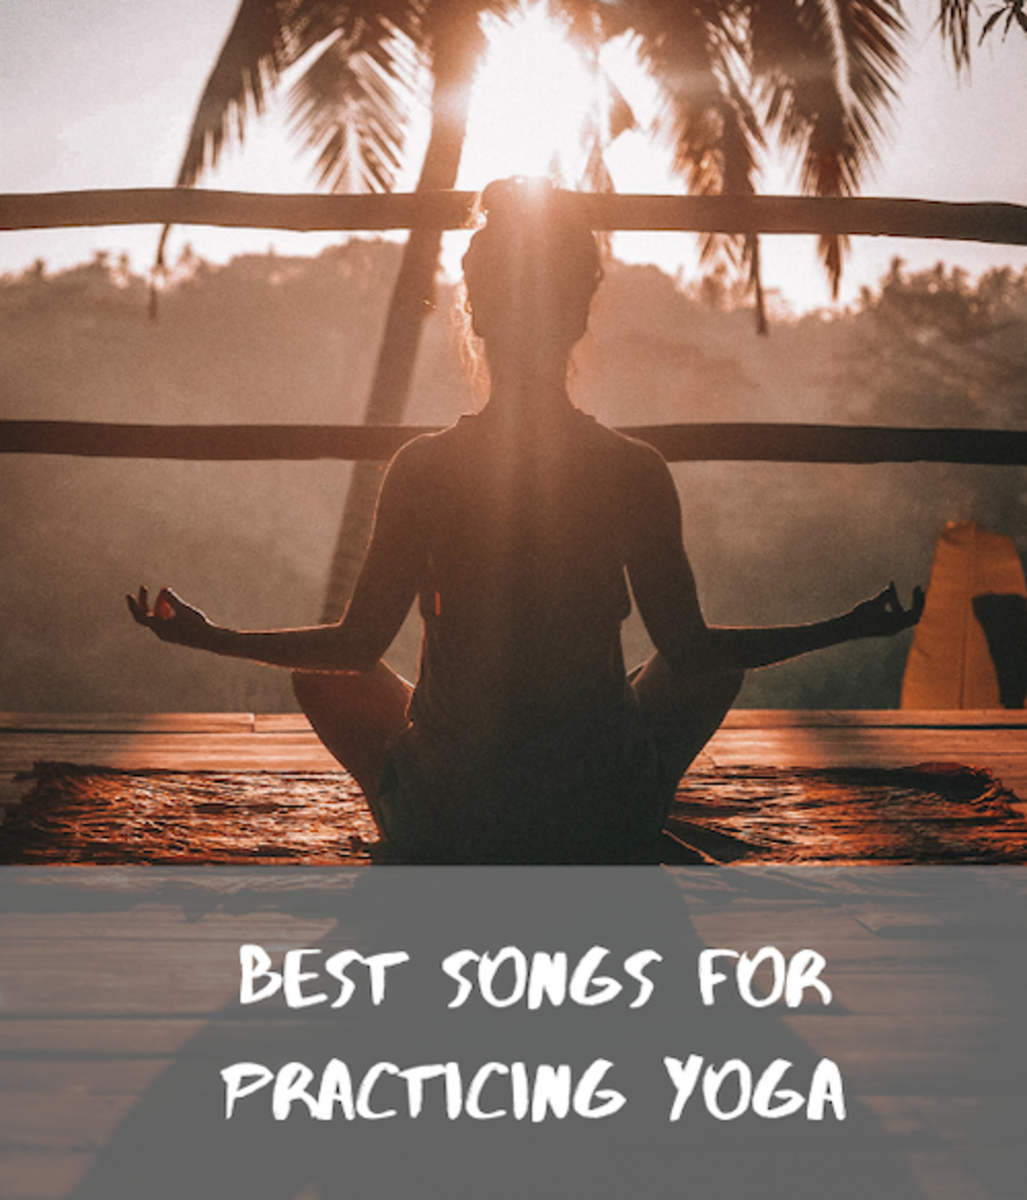 100 Best Songs for Practicing Yoga